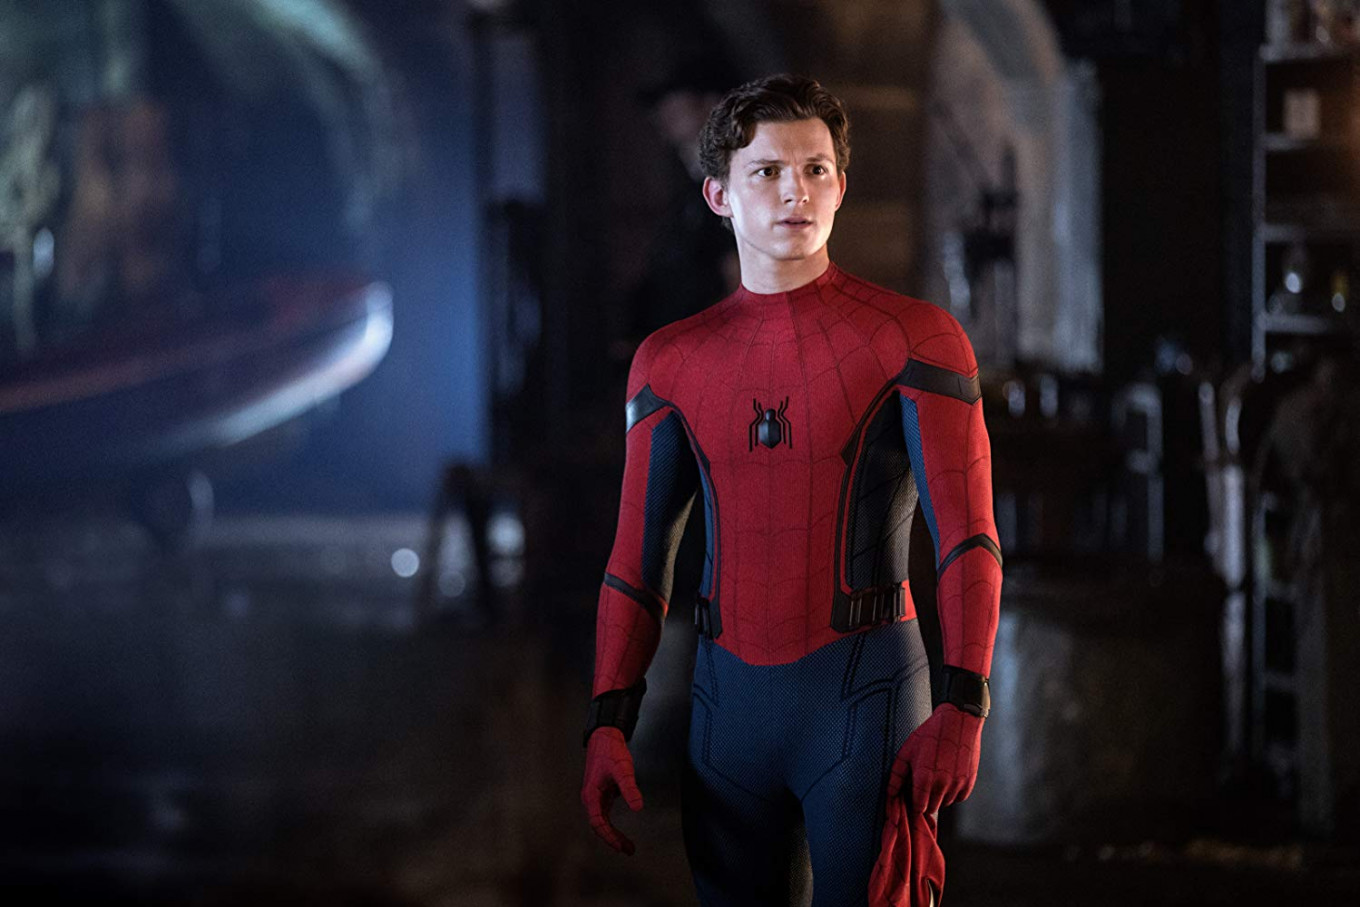 'Spider-Man' scores $93.6 million in win for Sony's A-list hero